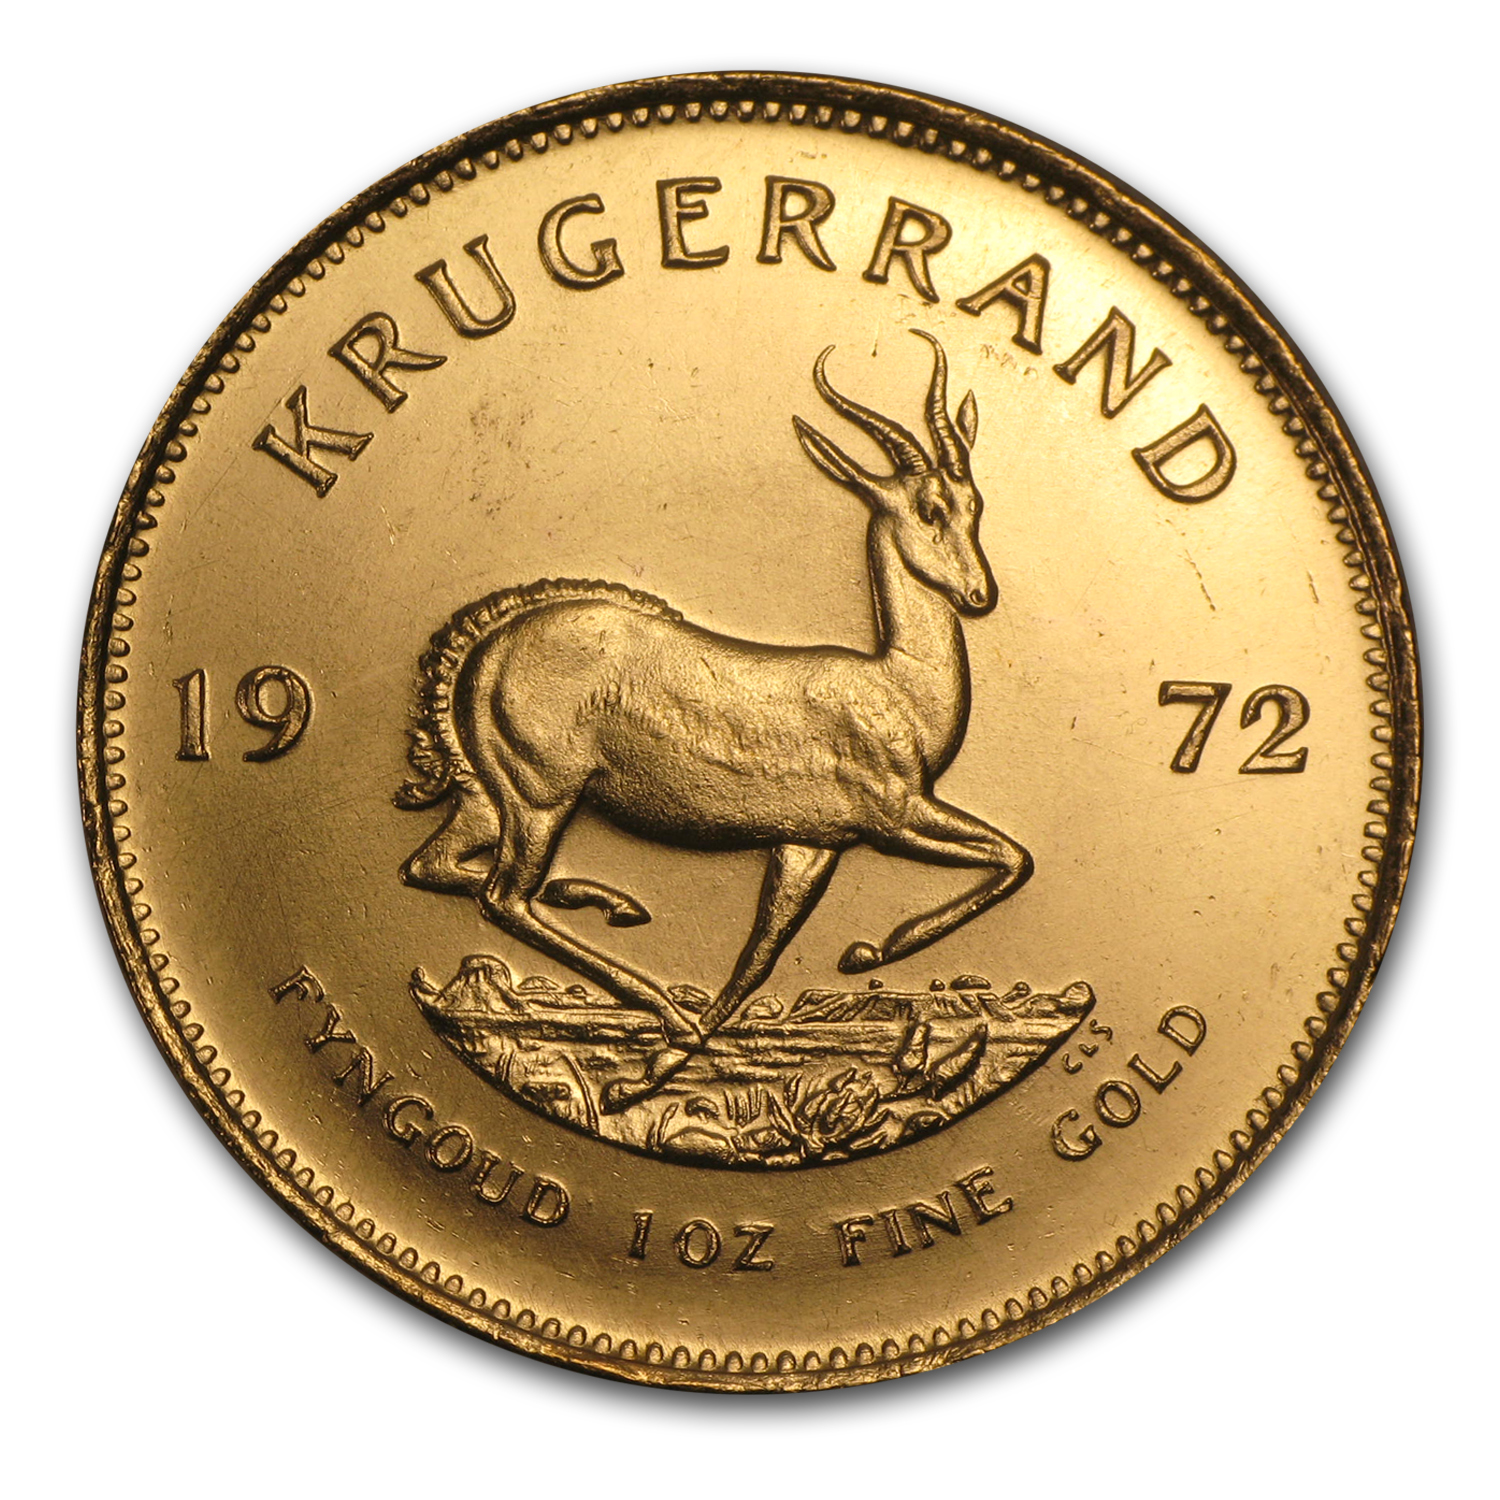 1972 South Africa 1 oz Gold Krugerrand